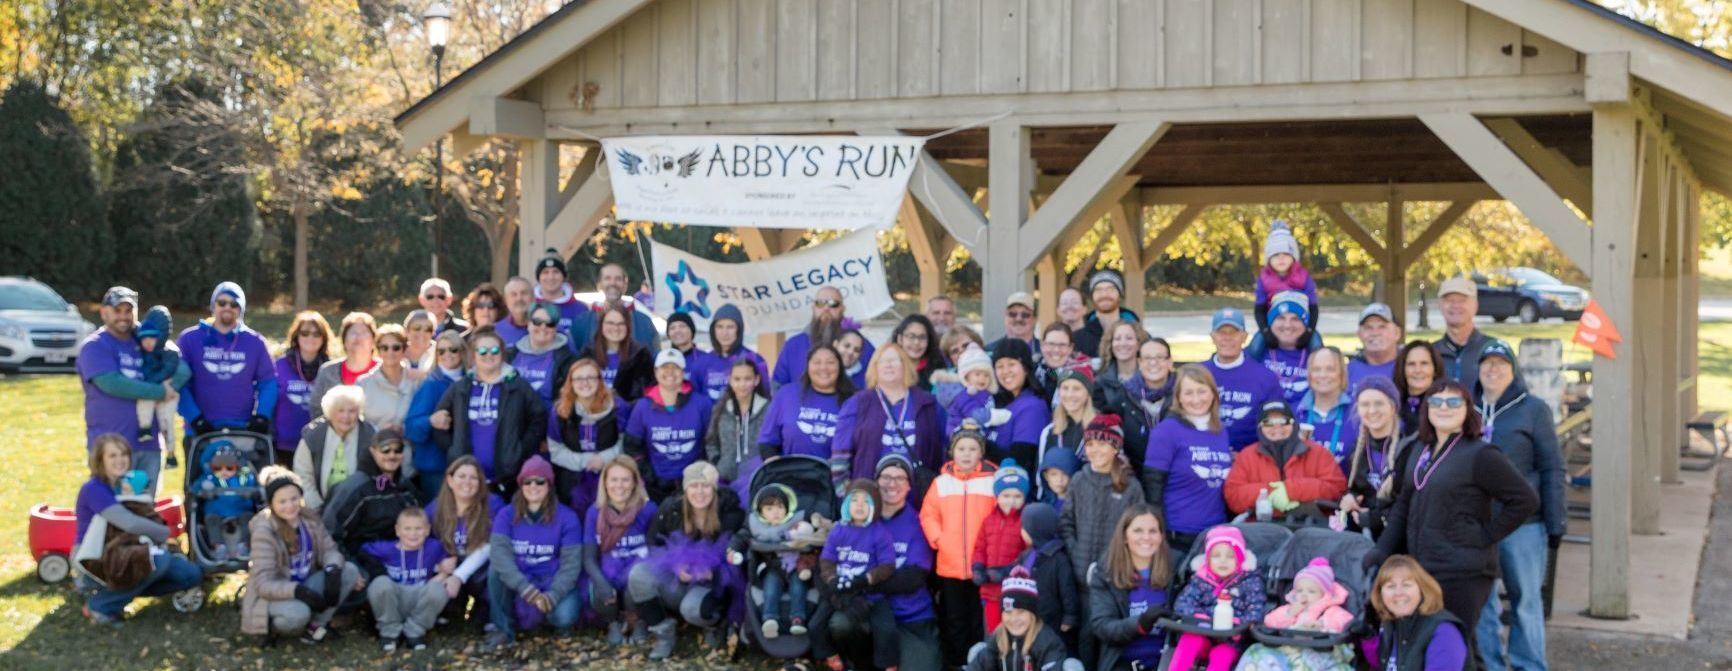 10th Annual Abby's Run for Stillbirth Awareness - Iron River, WI